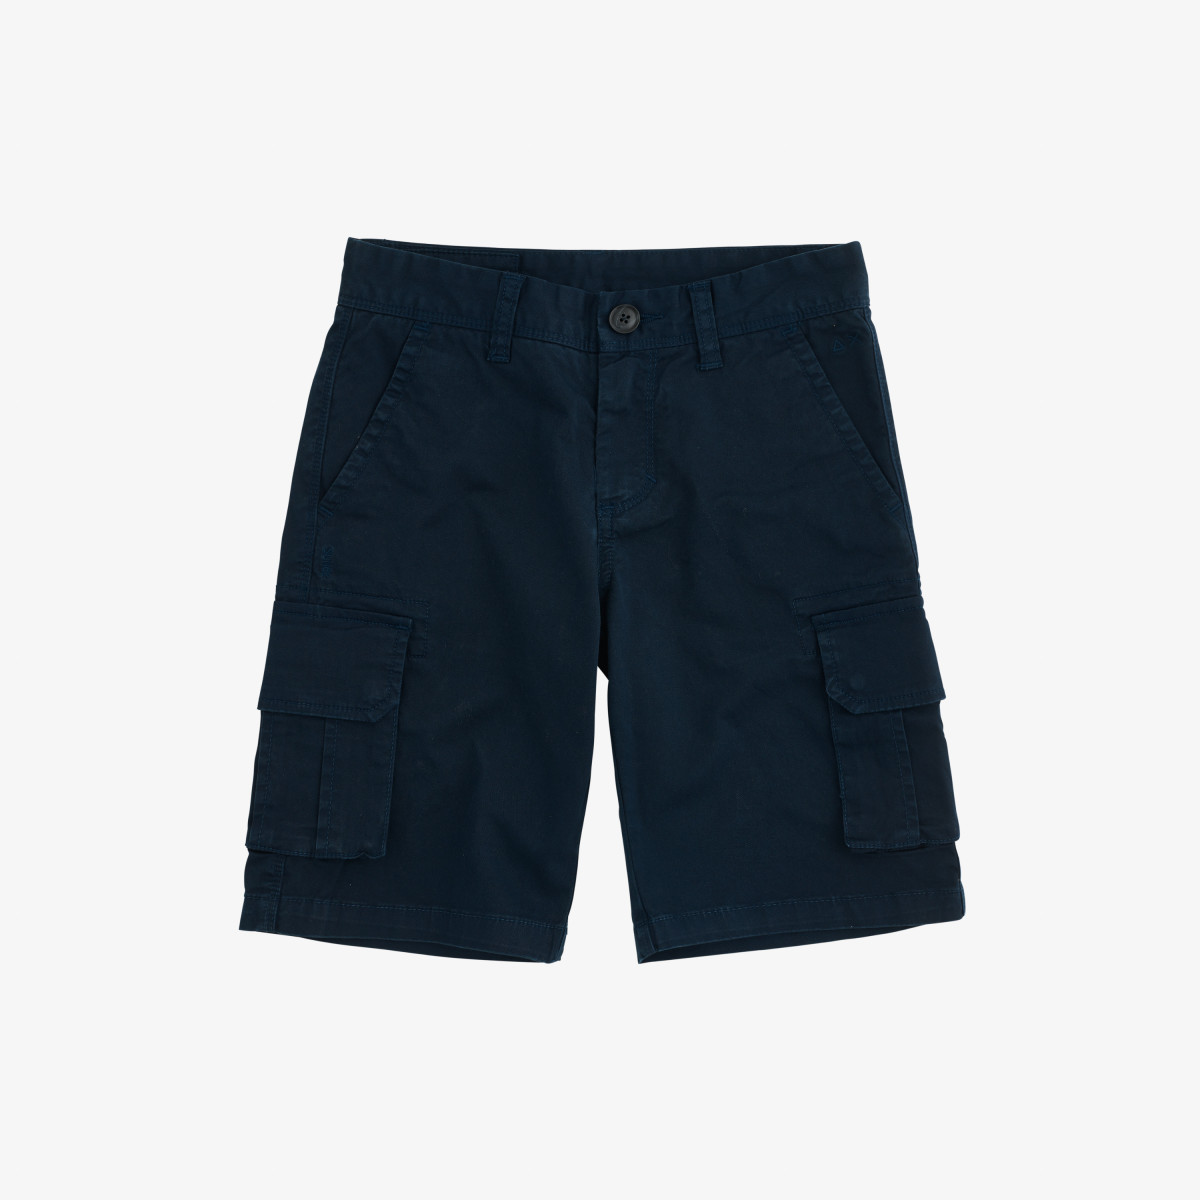 BOY'S MILITARY PANT SOLID NAVY BLUE